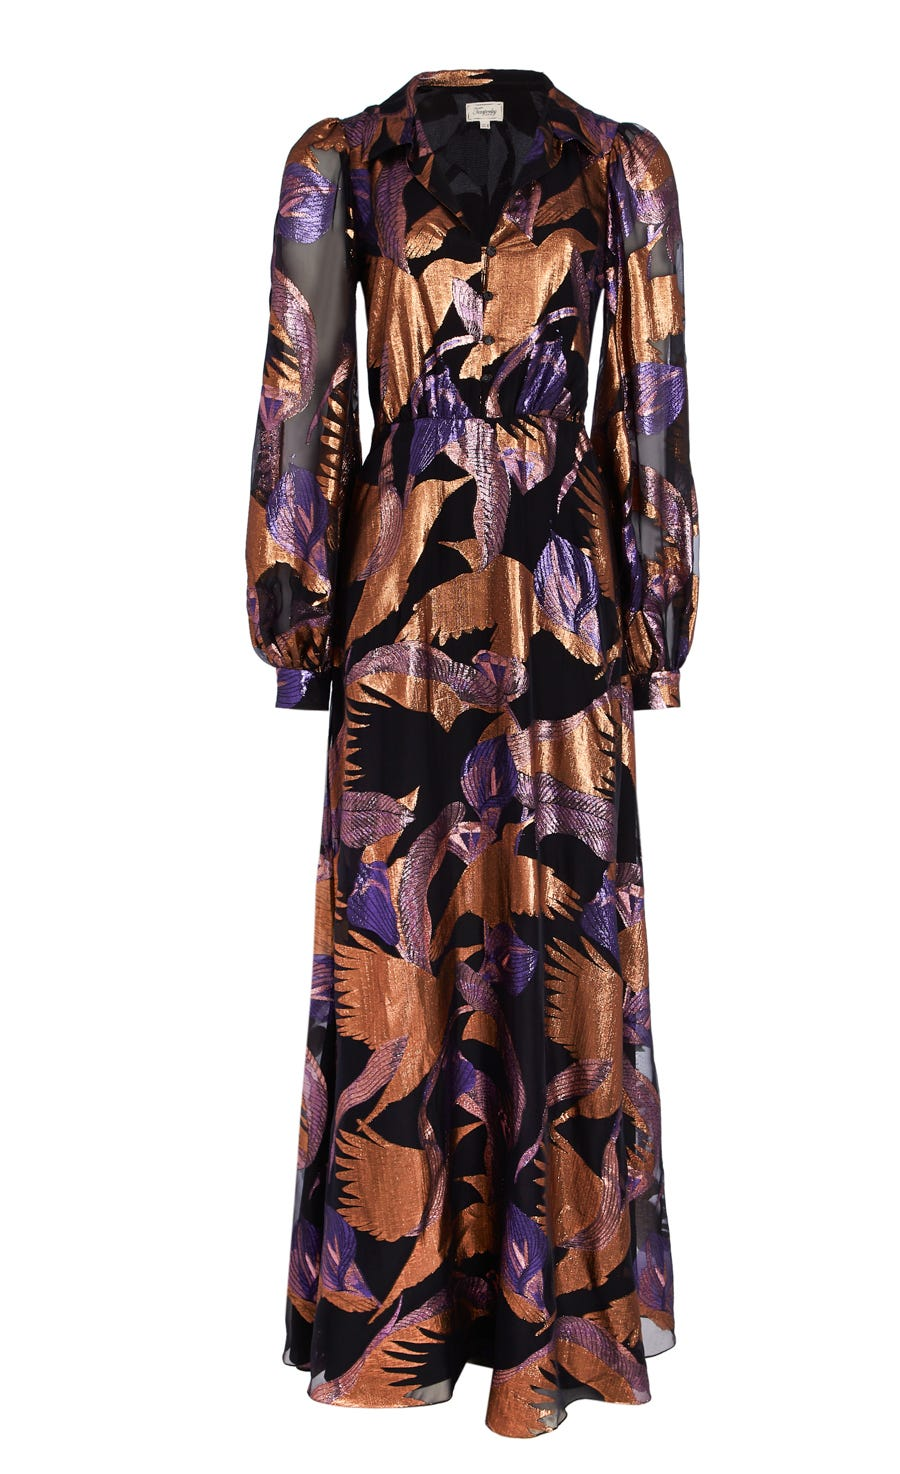 Temperley London Dresses KITTY FILCOUPE BUTTON DRESS